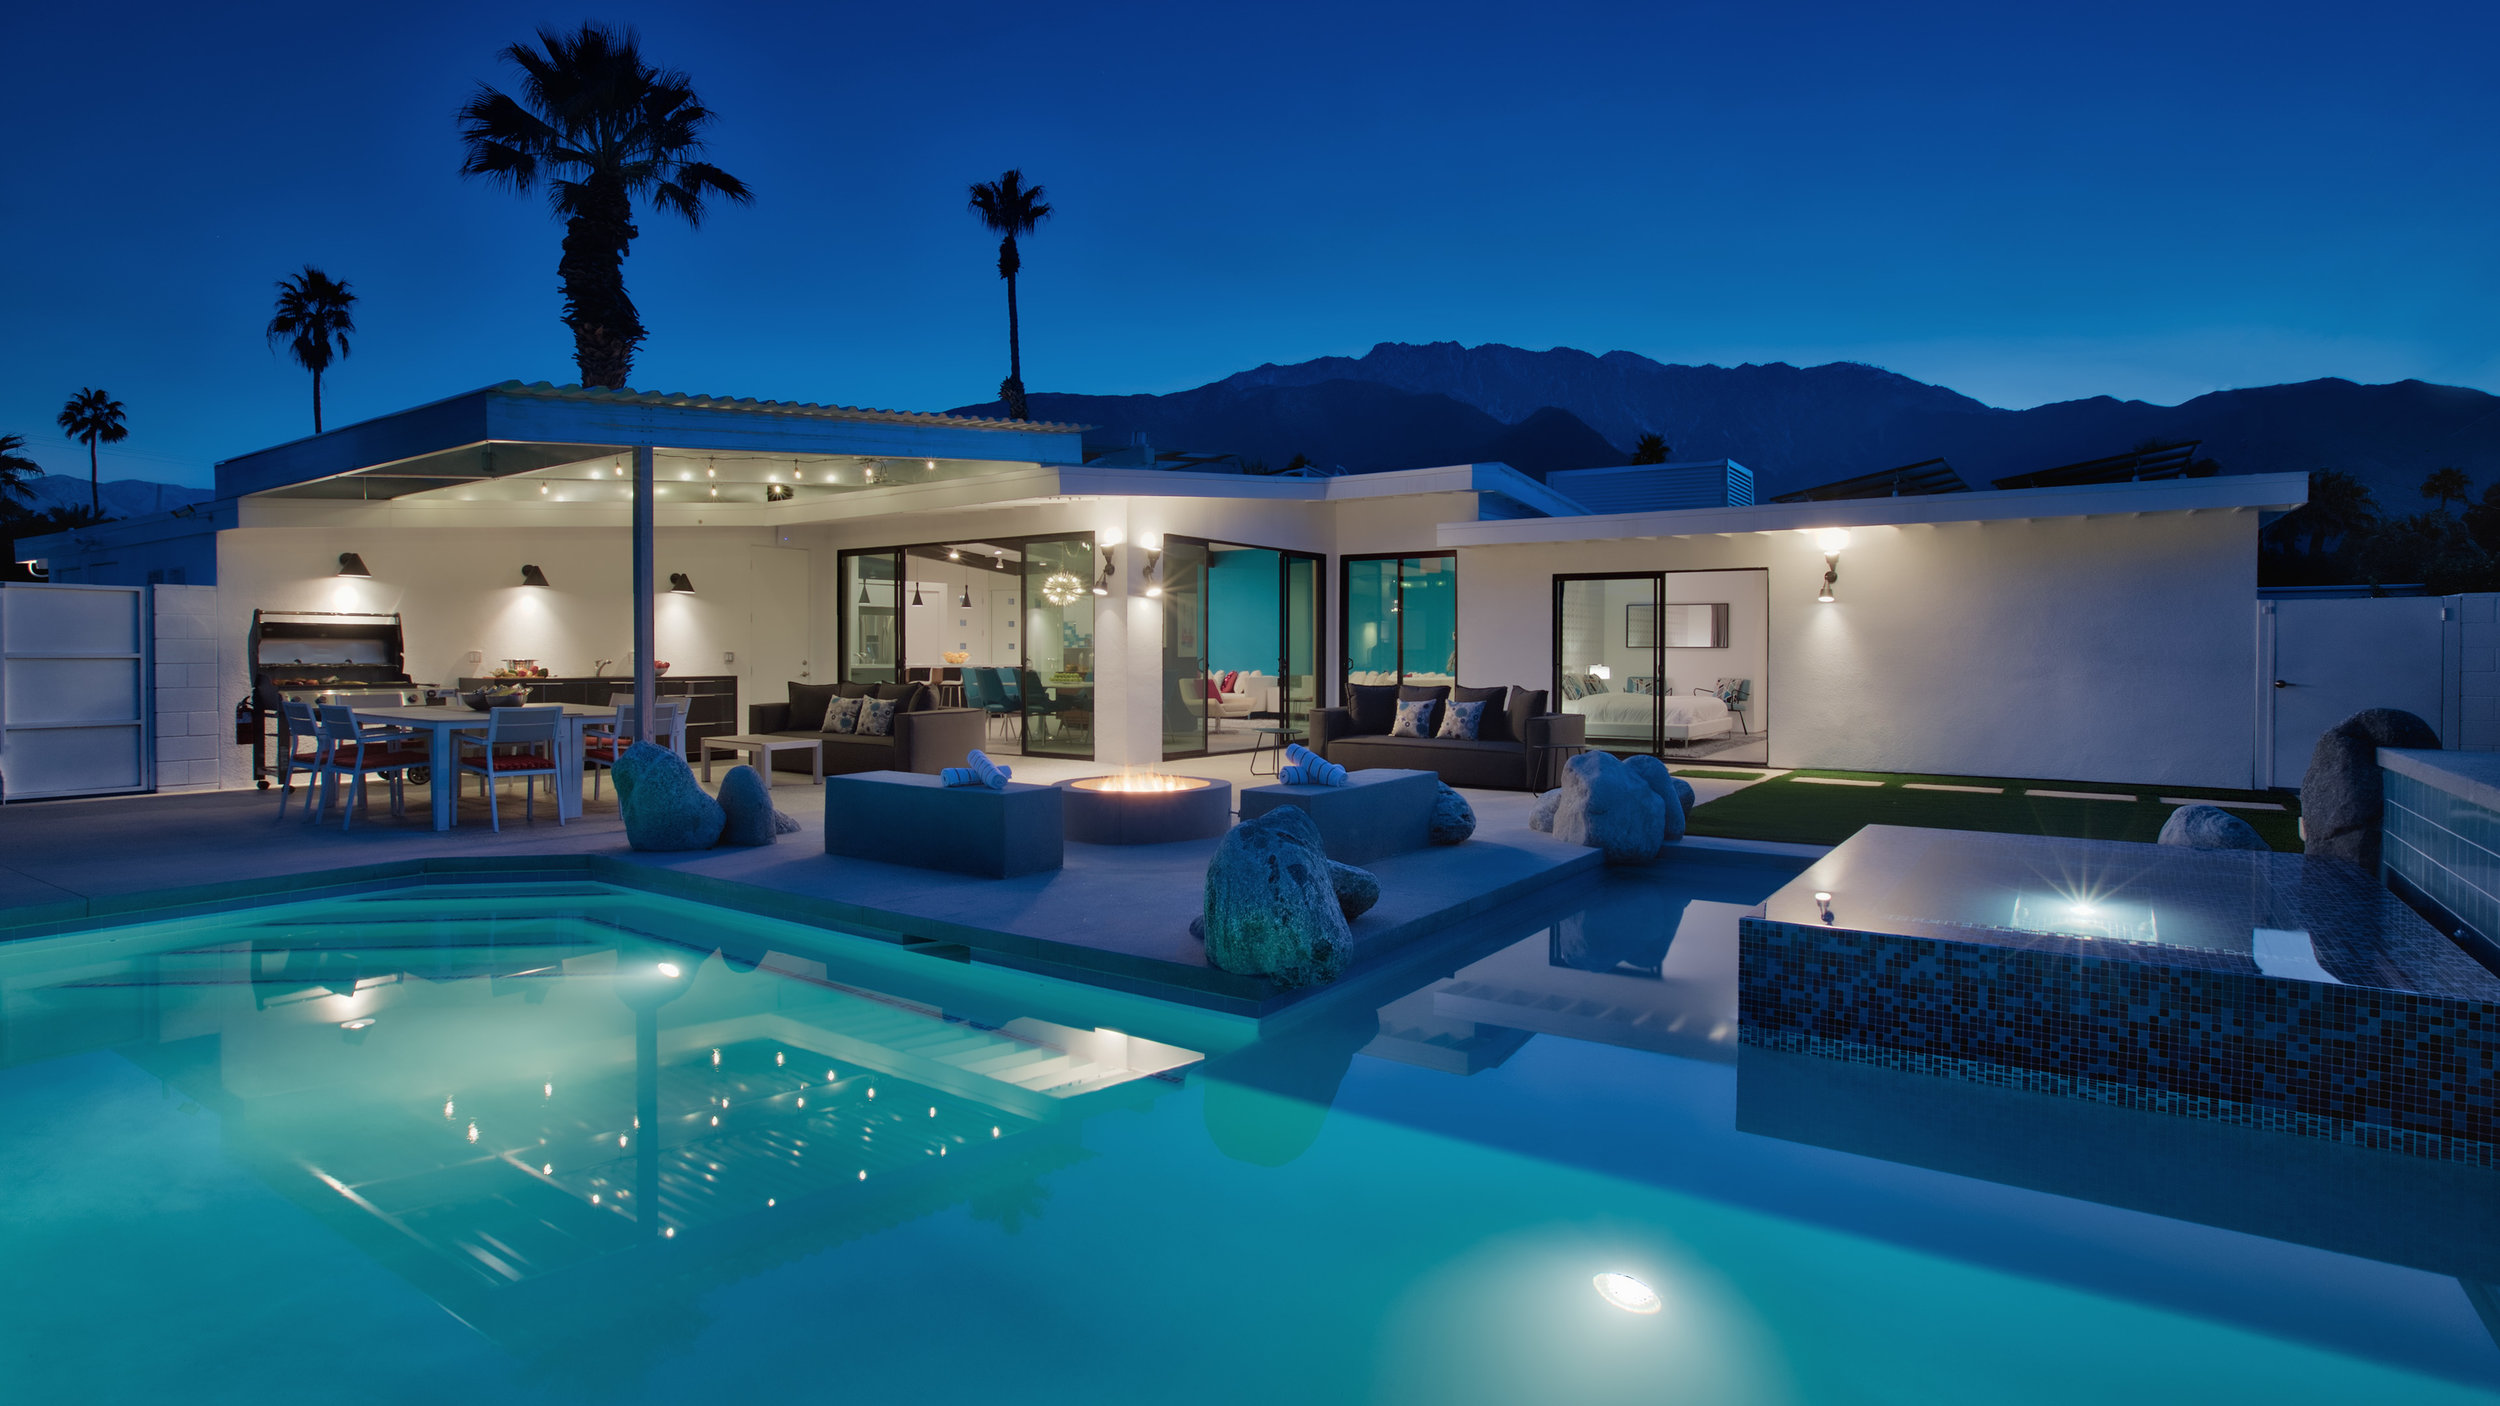 Enjoy the evenings in the covered outdoor lounge, around the firepit, or in the pool and spa.